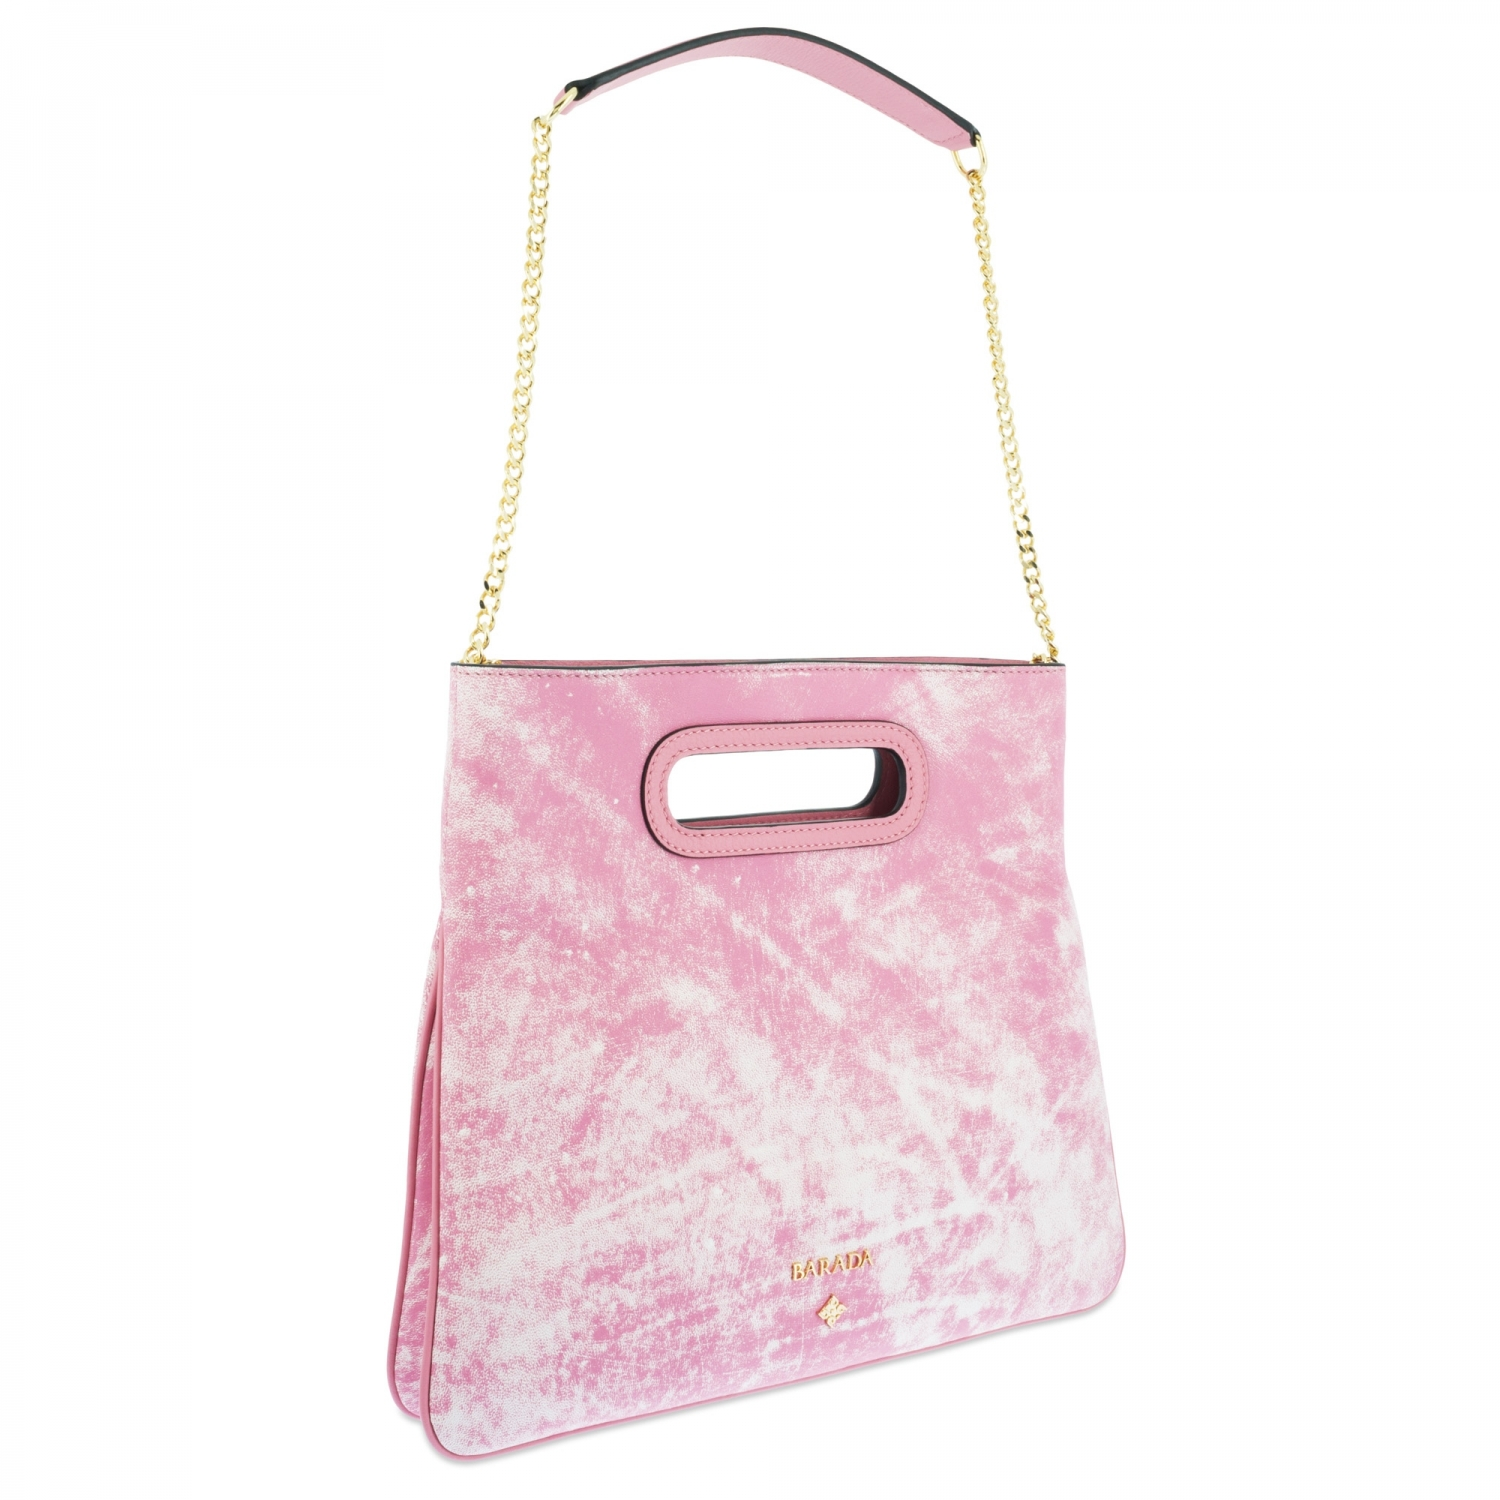 Top Handle Handbag Style 339 In Colibri Leather Lambskin And Pink